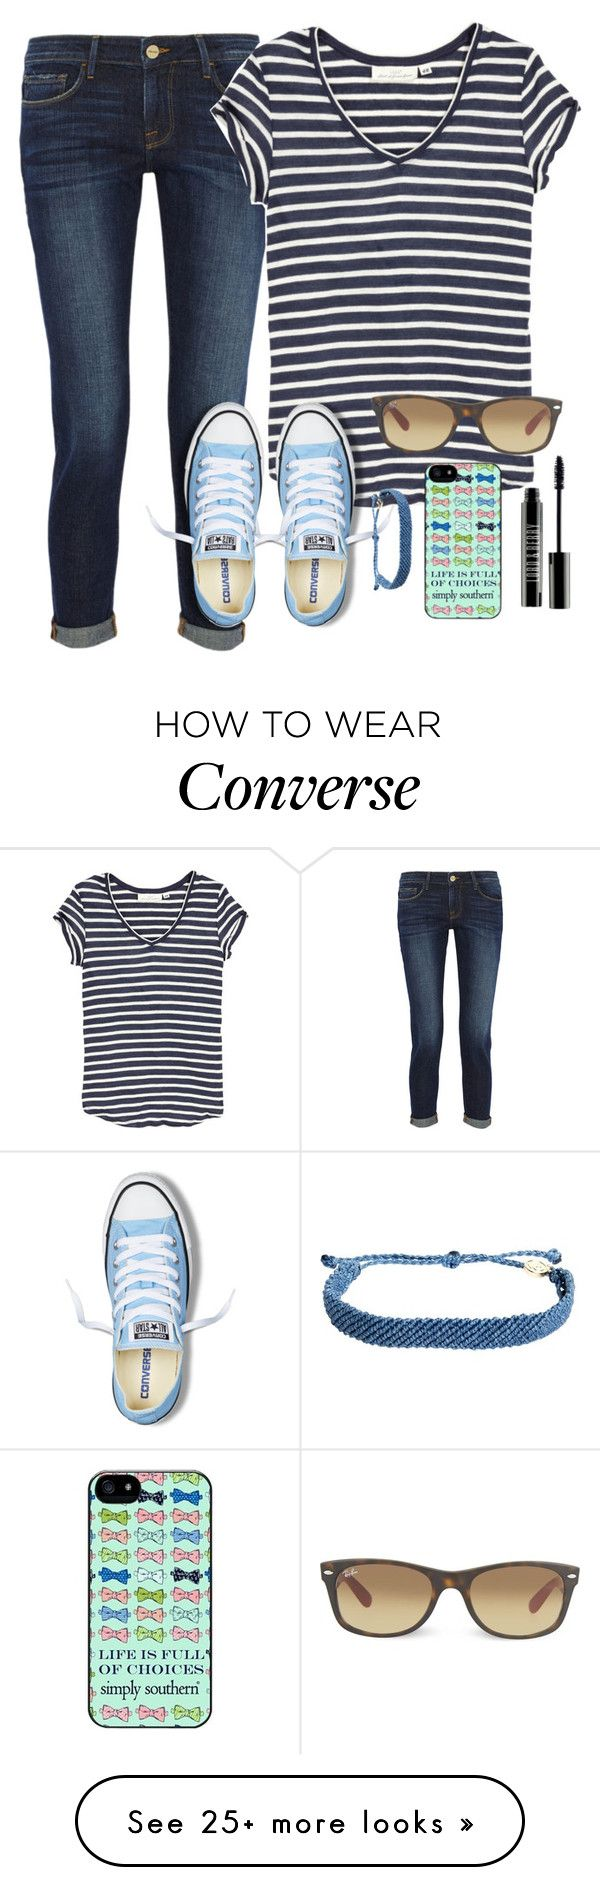 """""""Thanks for 700!!!"""" by skatetofreedom on Polyvore featuring Frame Denim, H&M, Converse, Pura Vida, Lord & Berry and Ray-Ban"""